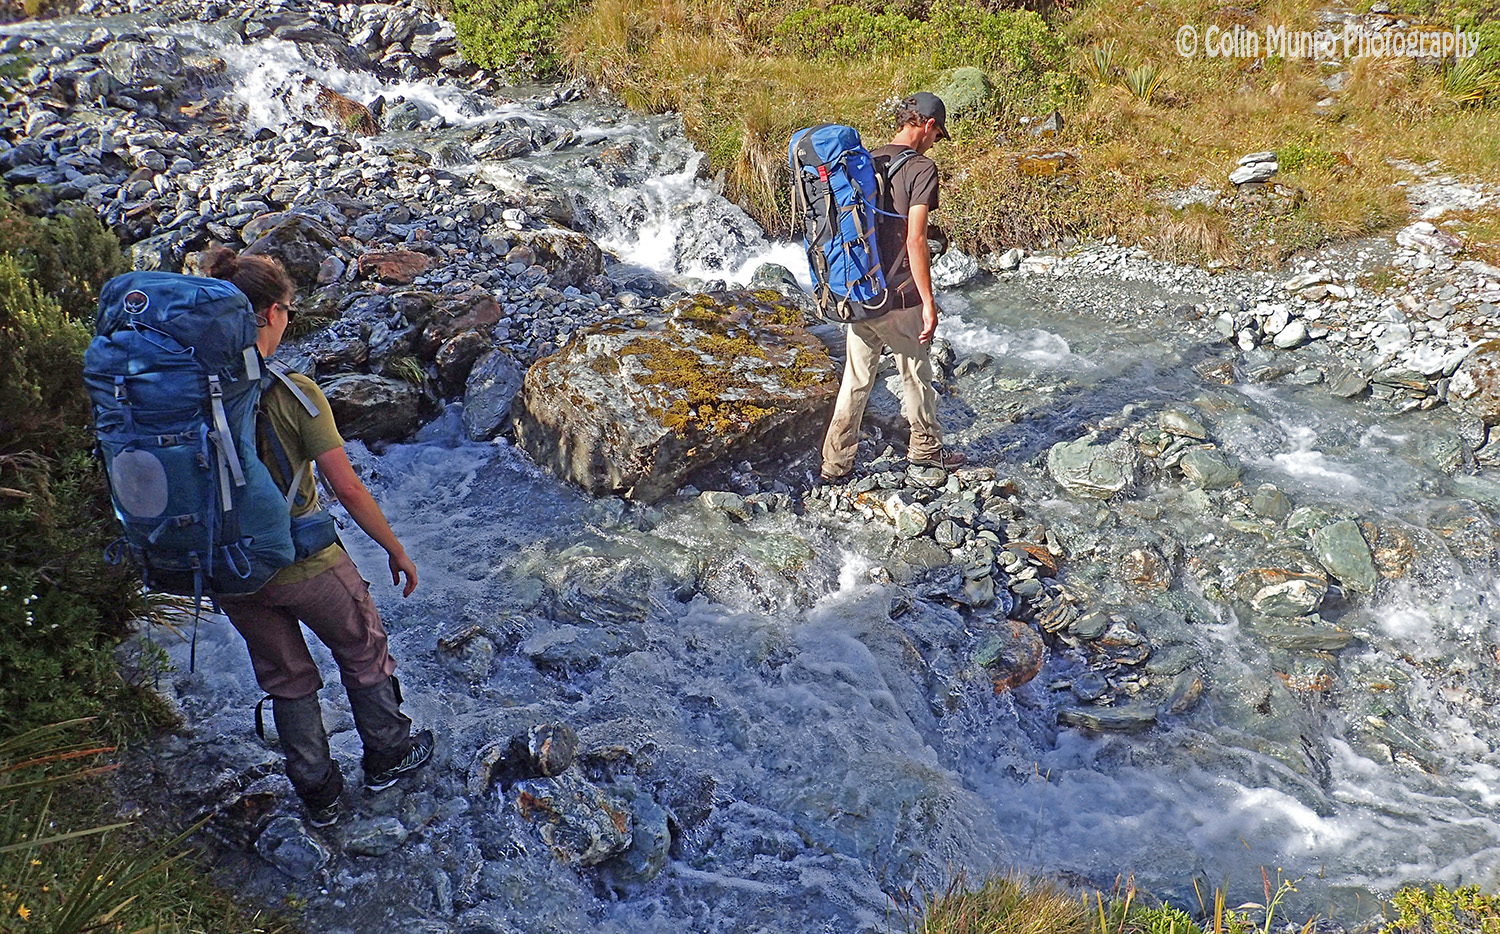 Jesse and Alecia, companions along part of the track, at one of the many stream crossings.